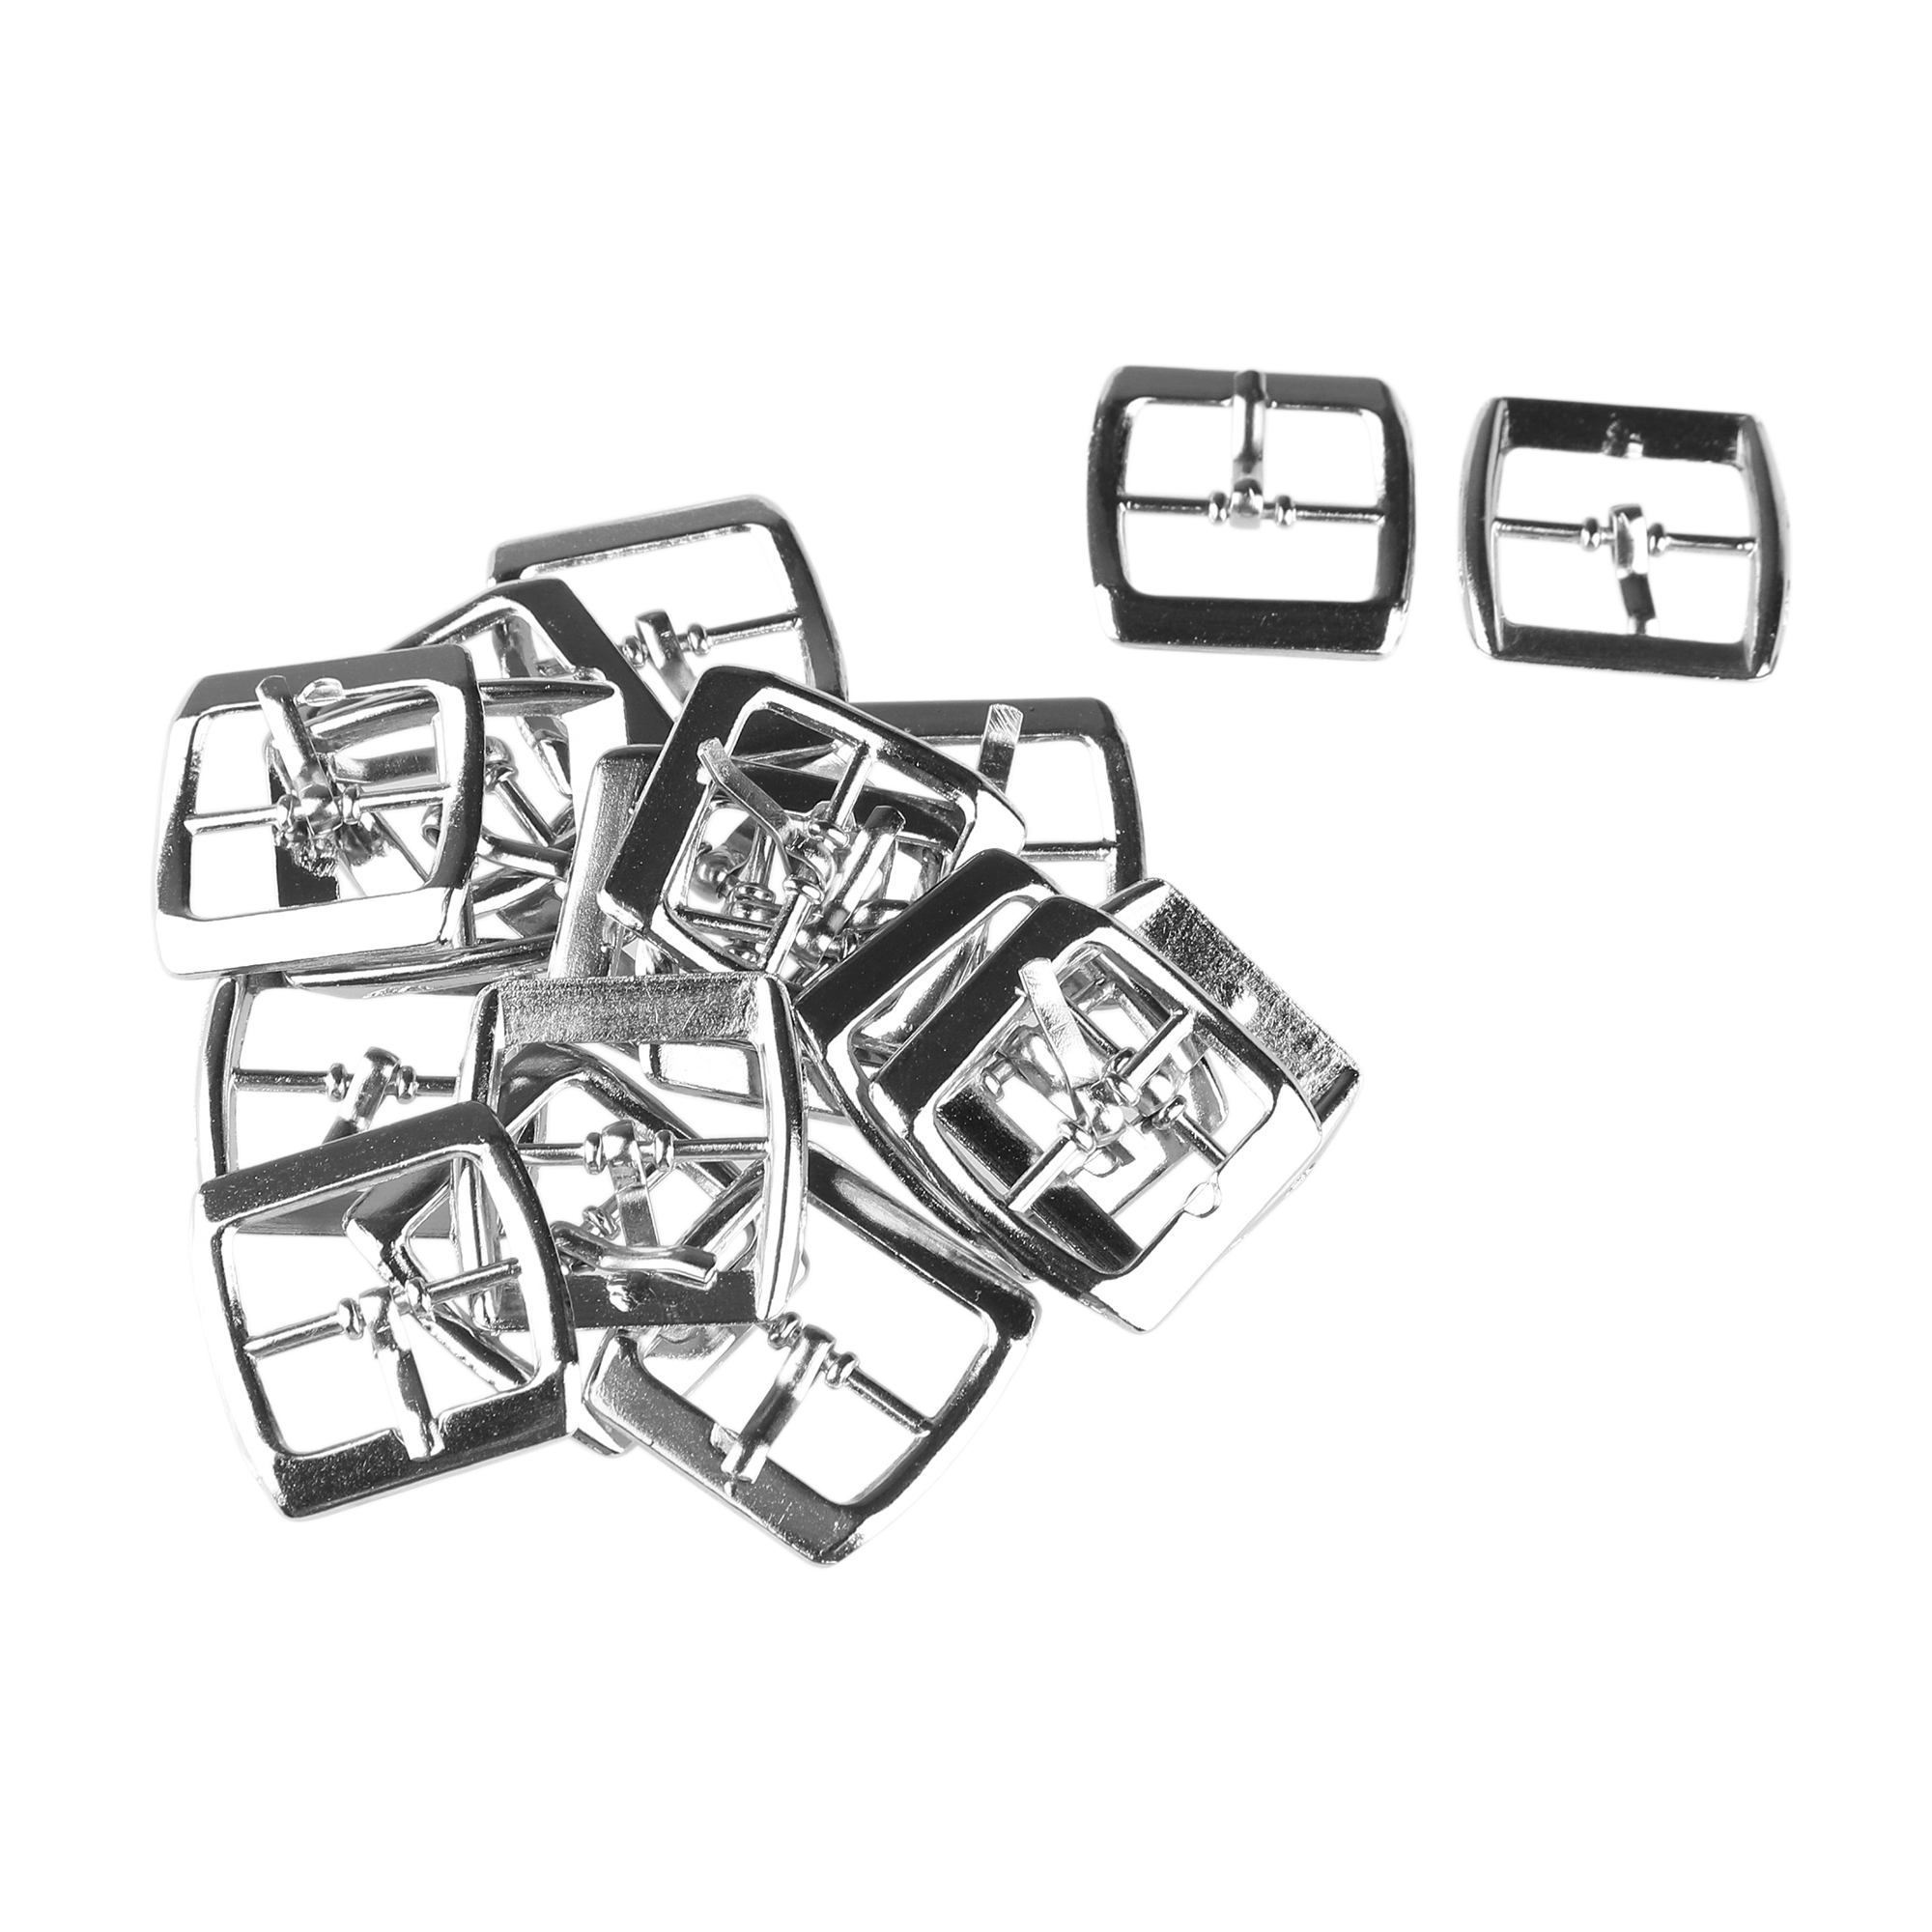 Metallic Single Prong Pin Center Shoes Buckles Silver Tone 19 Pcs